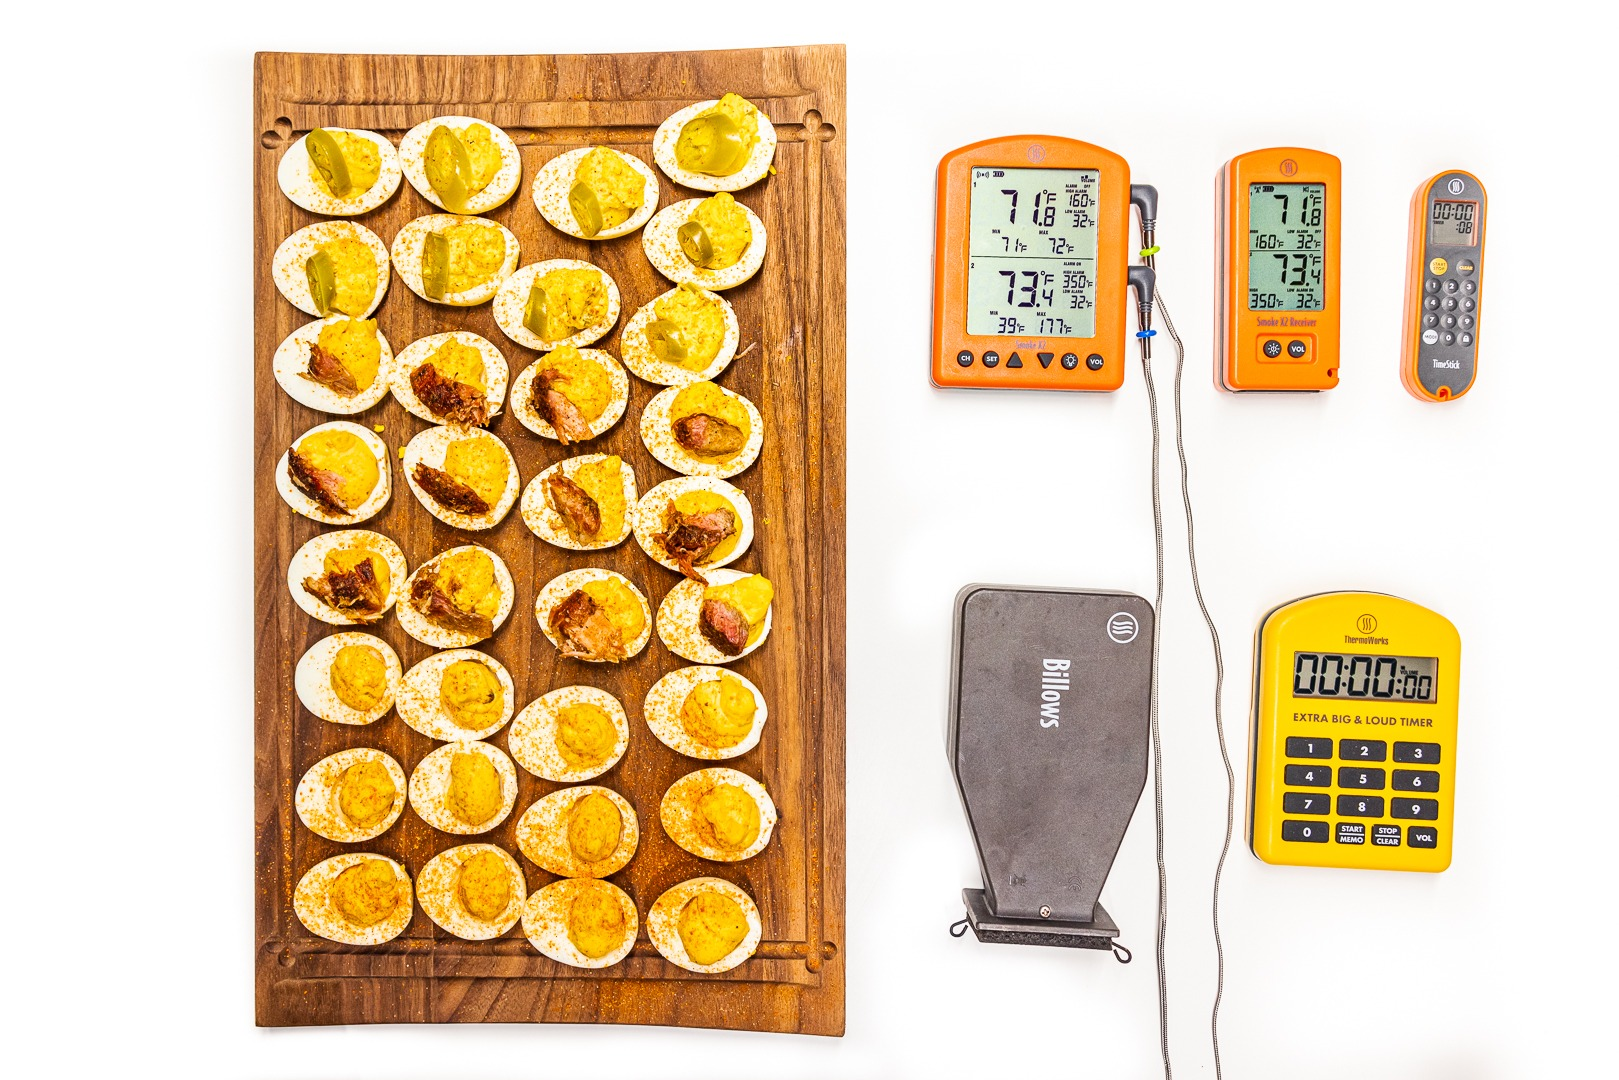 Smoked deviled eggs and the tools to make them